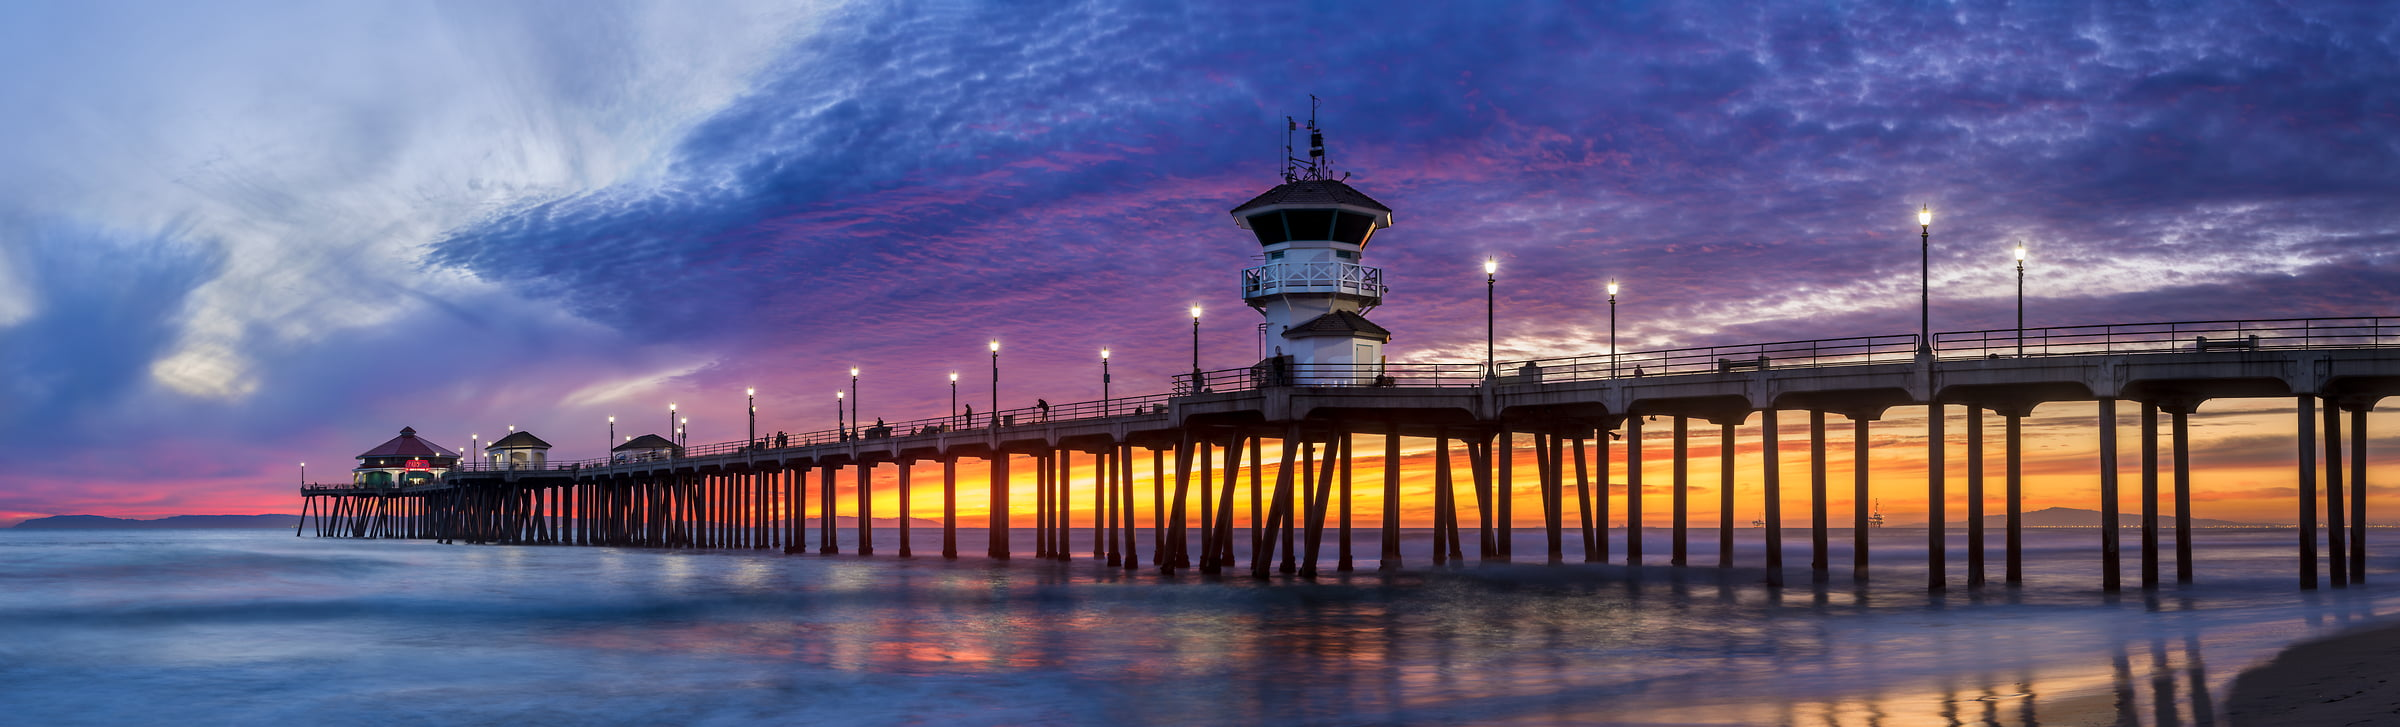 201 megapixels! A very high resolution, large-format VAST photo of a pier and the ocean at sunset; fine art photograph created by Jim Tarpo in Huntington Beach, California